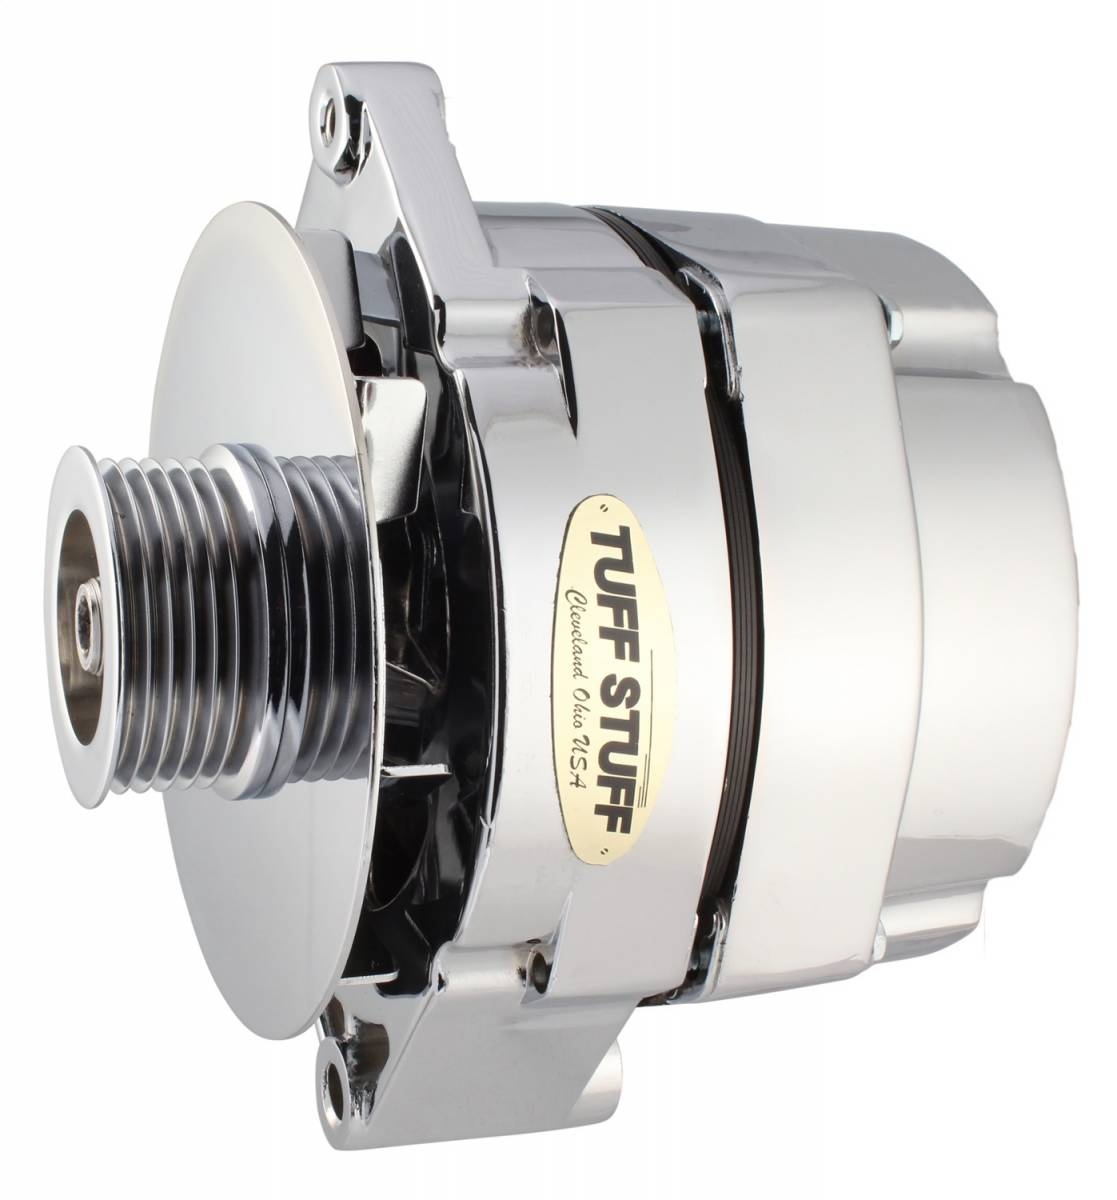 Tuff Stuff Performance - Alternator 100 AMP OEM Or 1 Wire 6 Groove Serpentine Pulley Chrome 7127ND6G